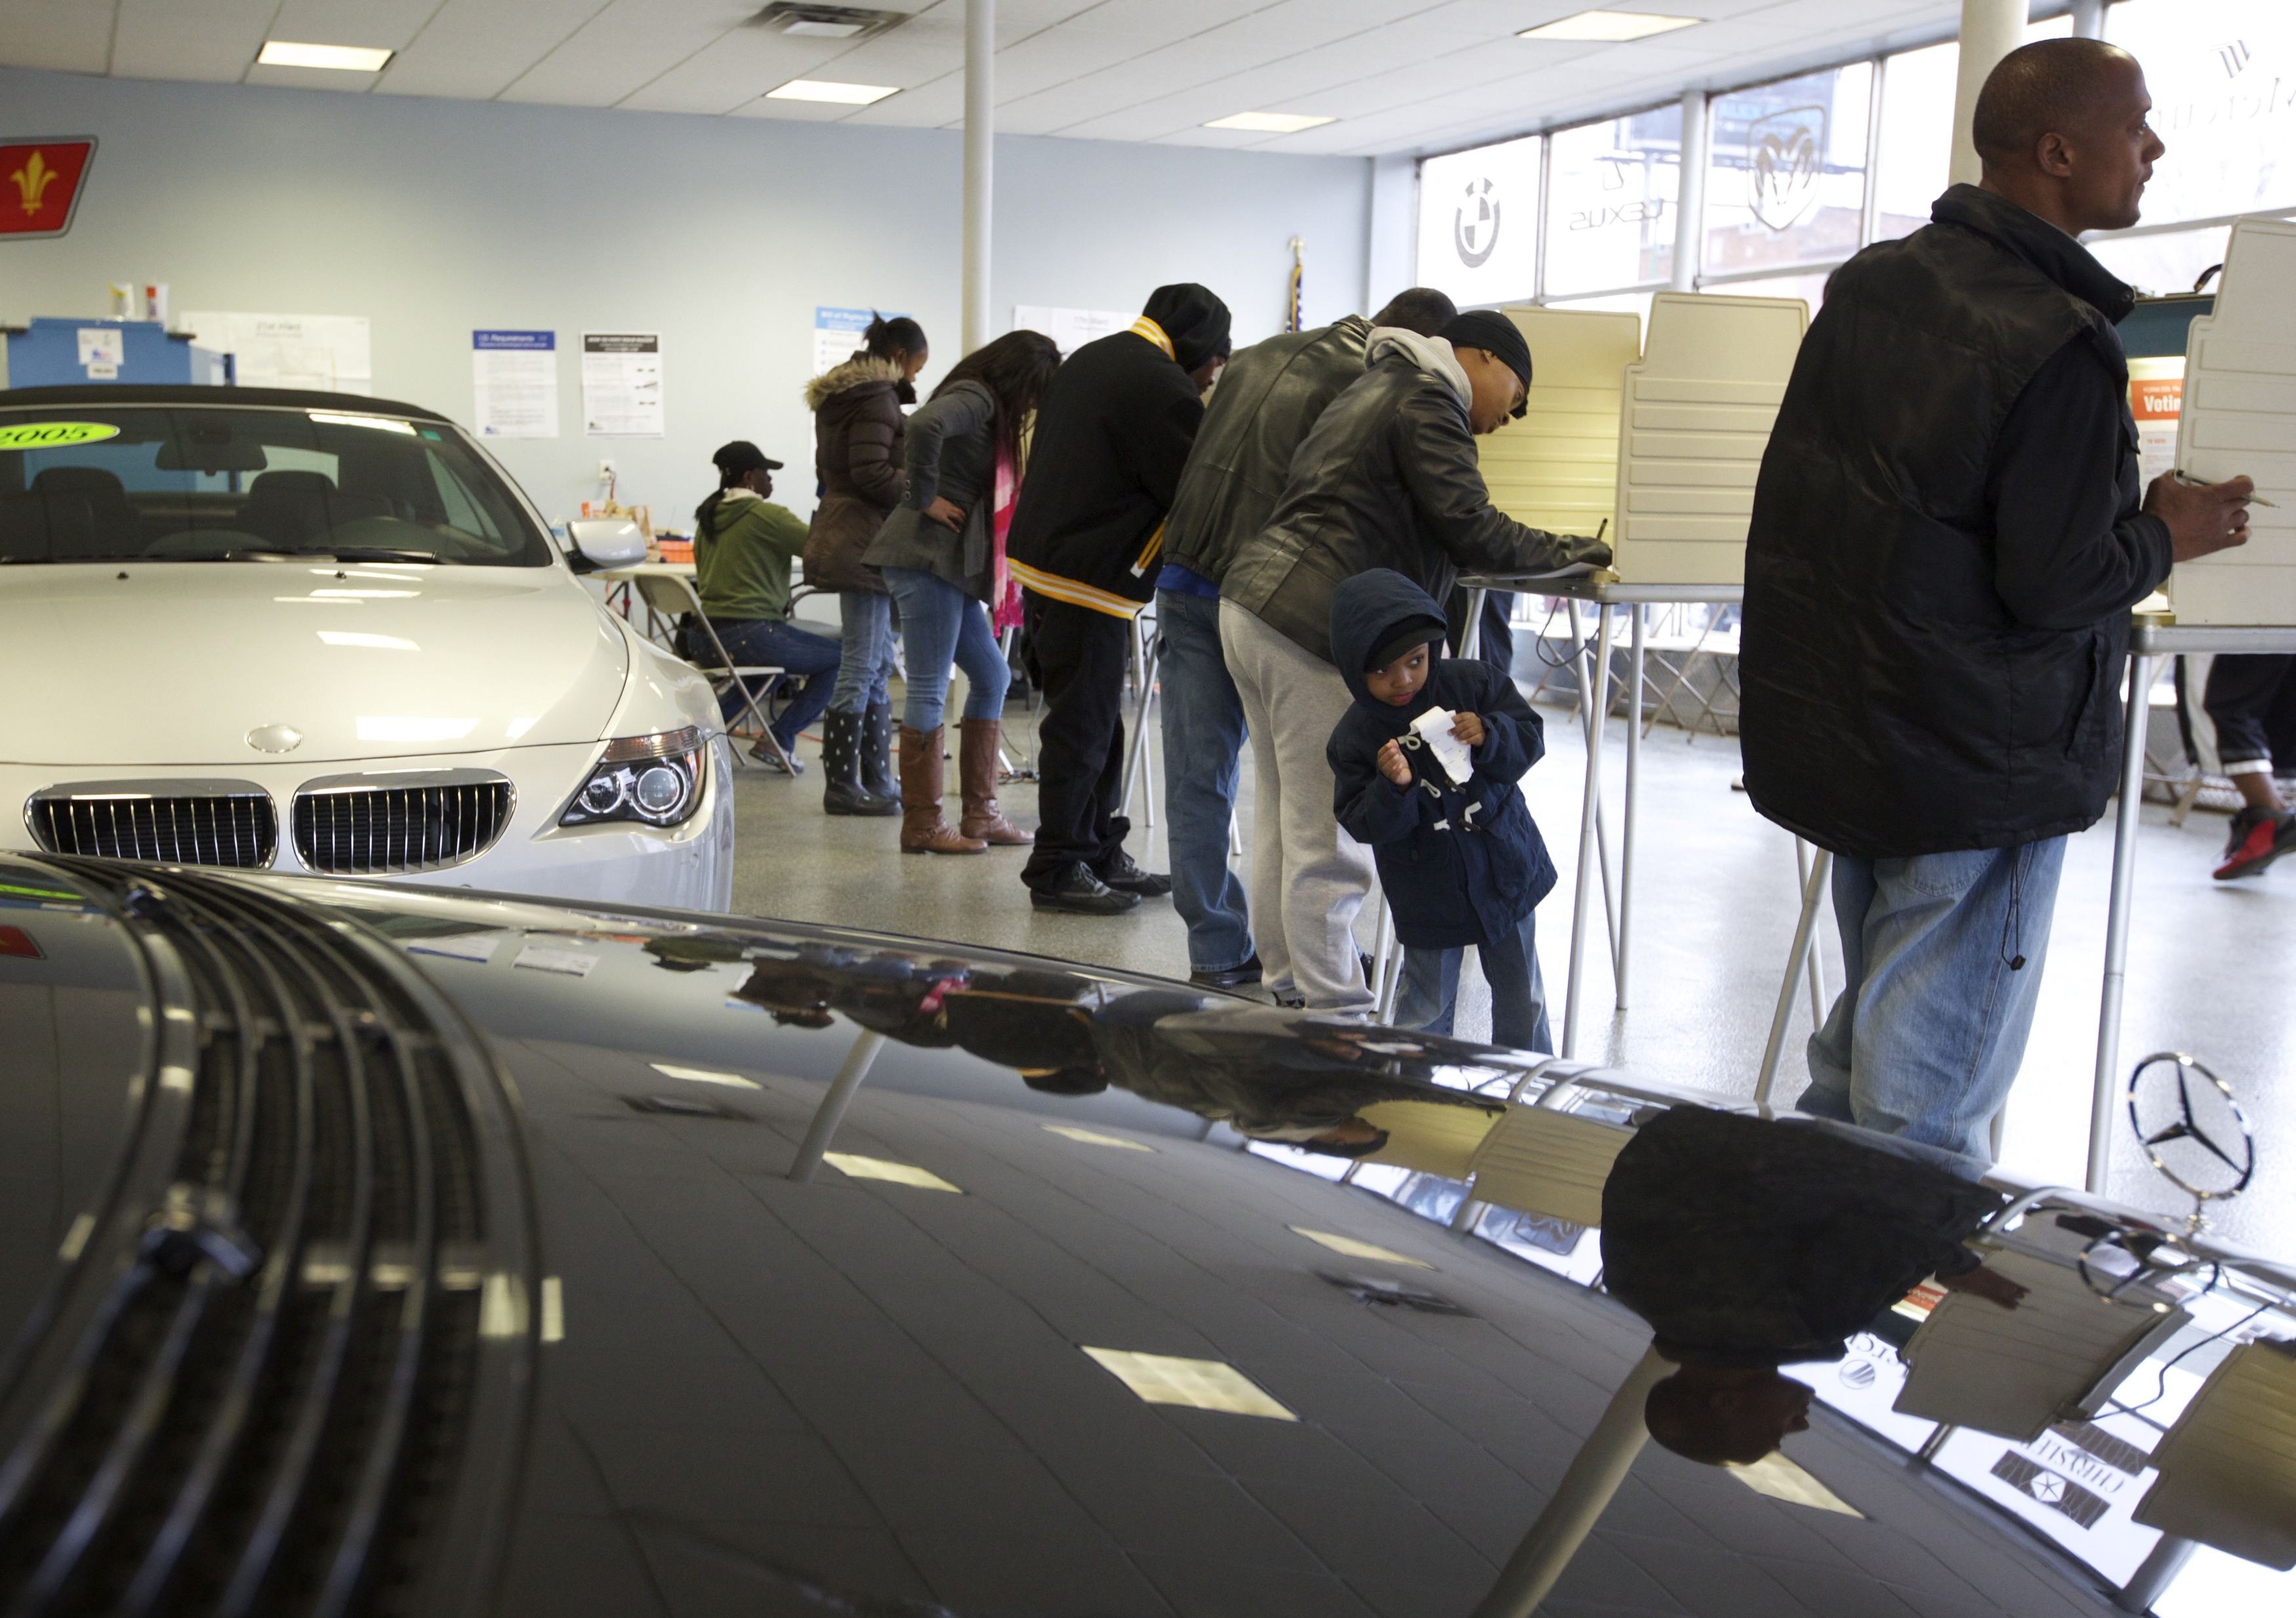 Voters cast their ballots next to cars during the U.S. presidential election at Sam's Auto Sales in Chicago